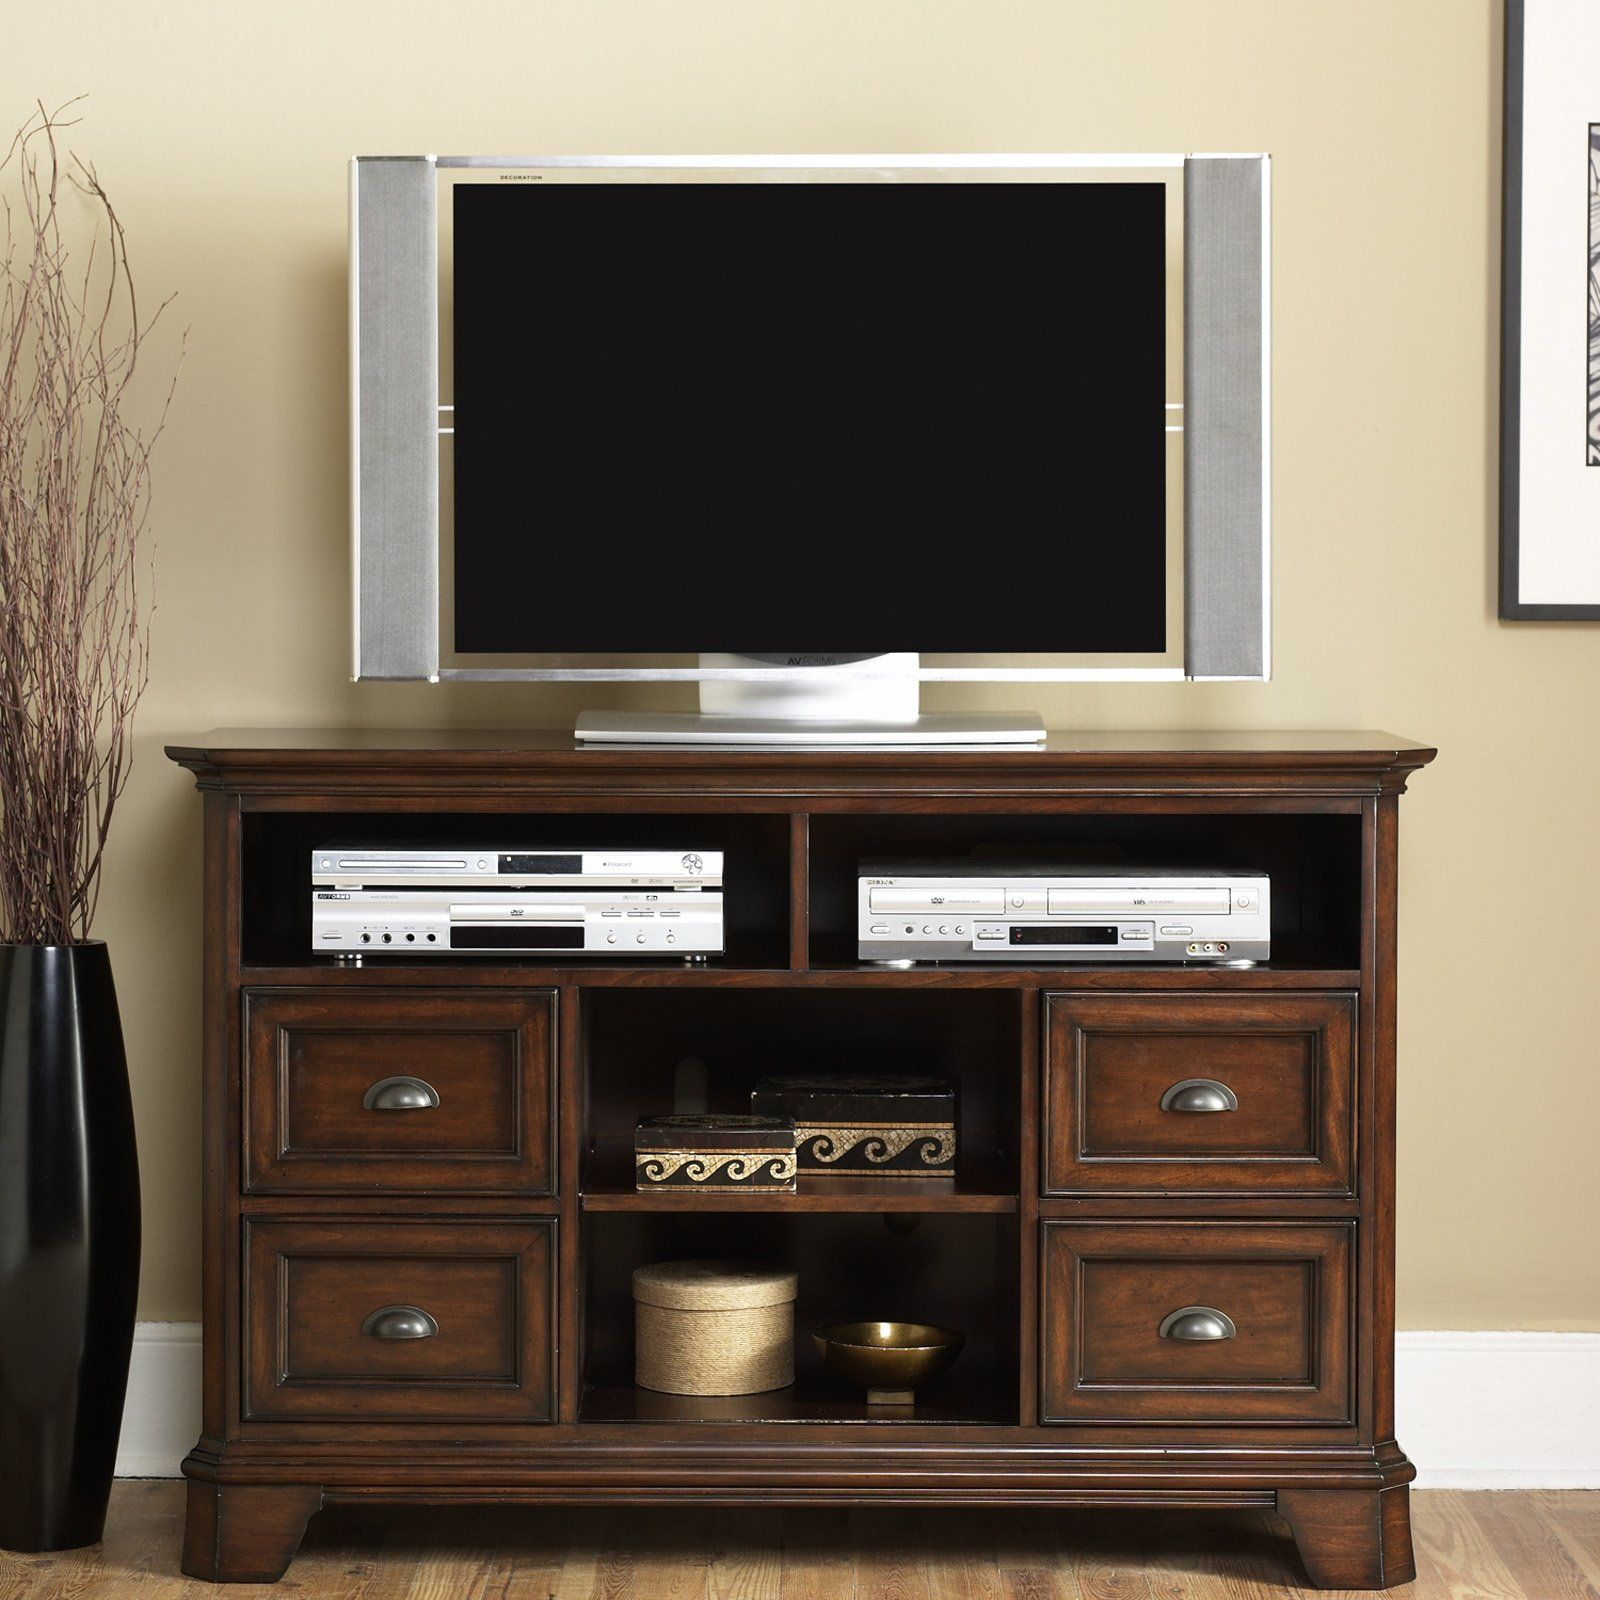 The 25 best tall tv stands ideas on pinterest living room tv tv table stand and 4 shelf tv stand for Tall tv stands for living room